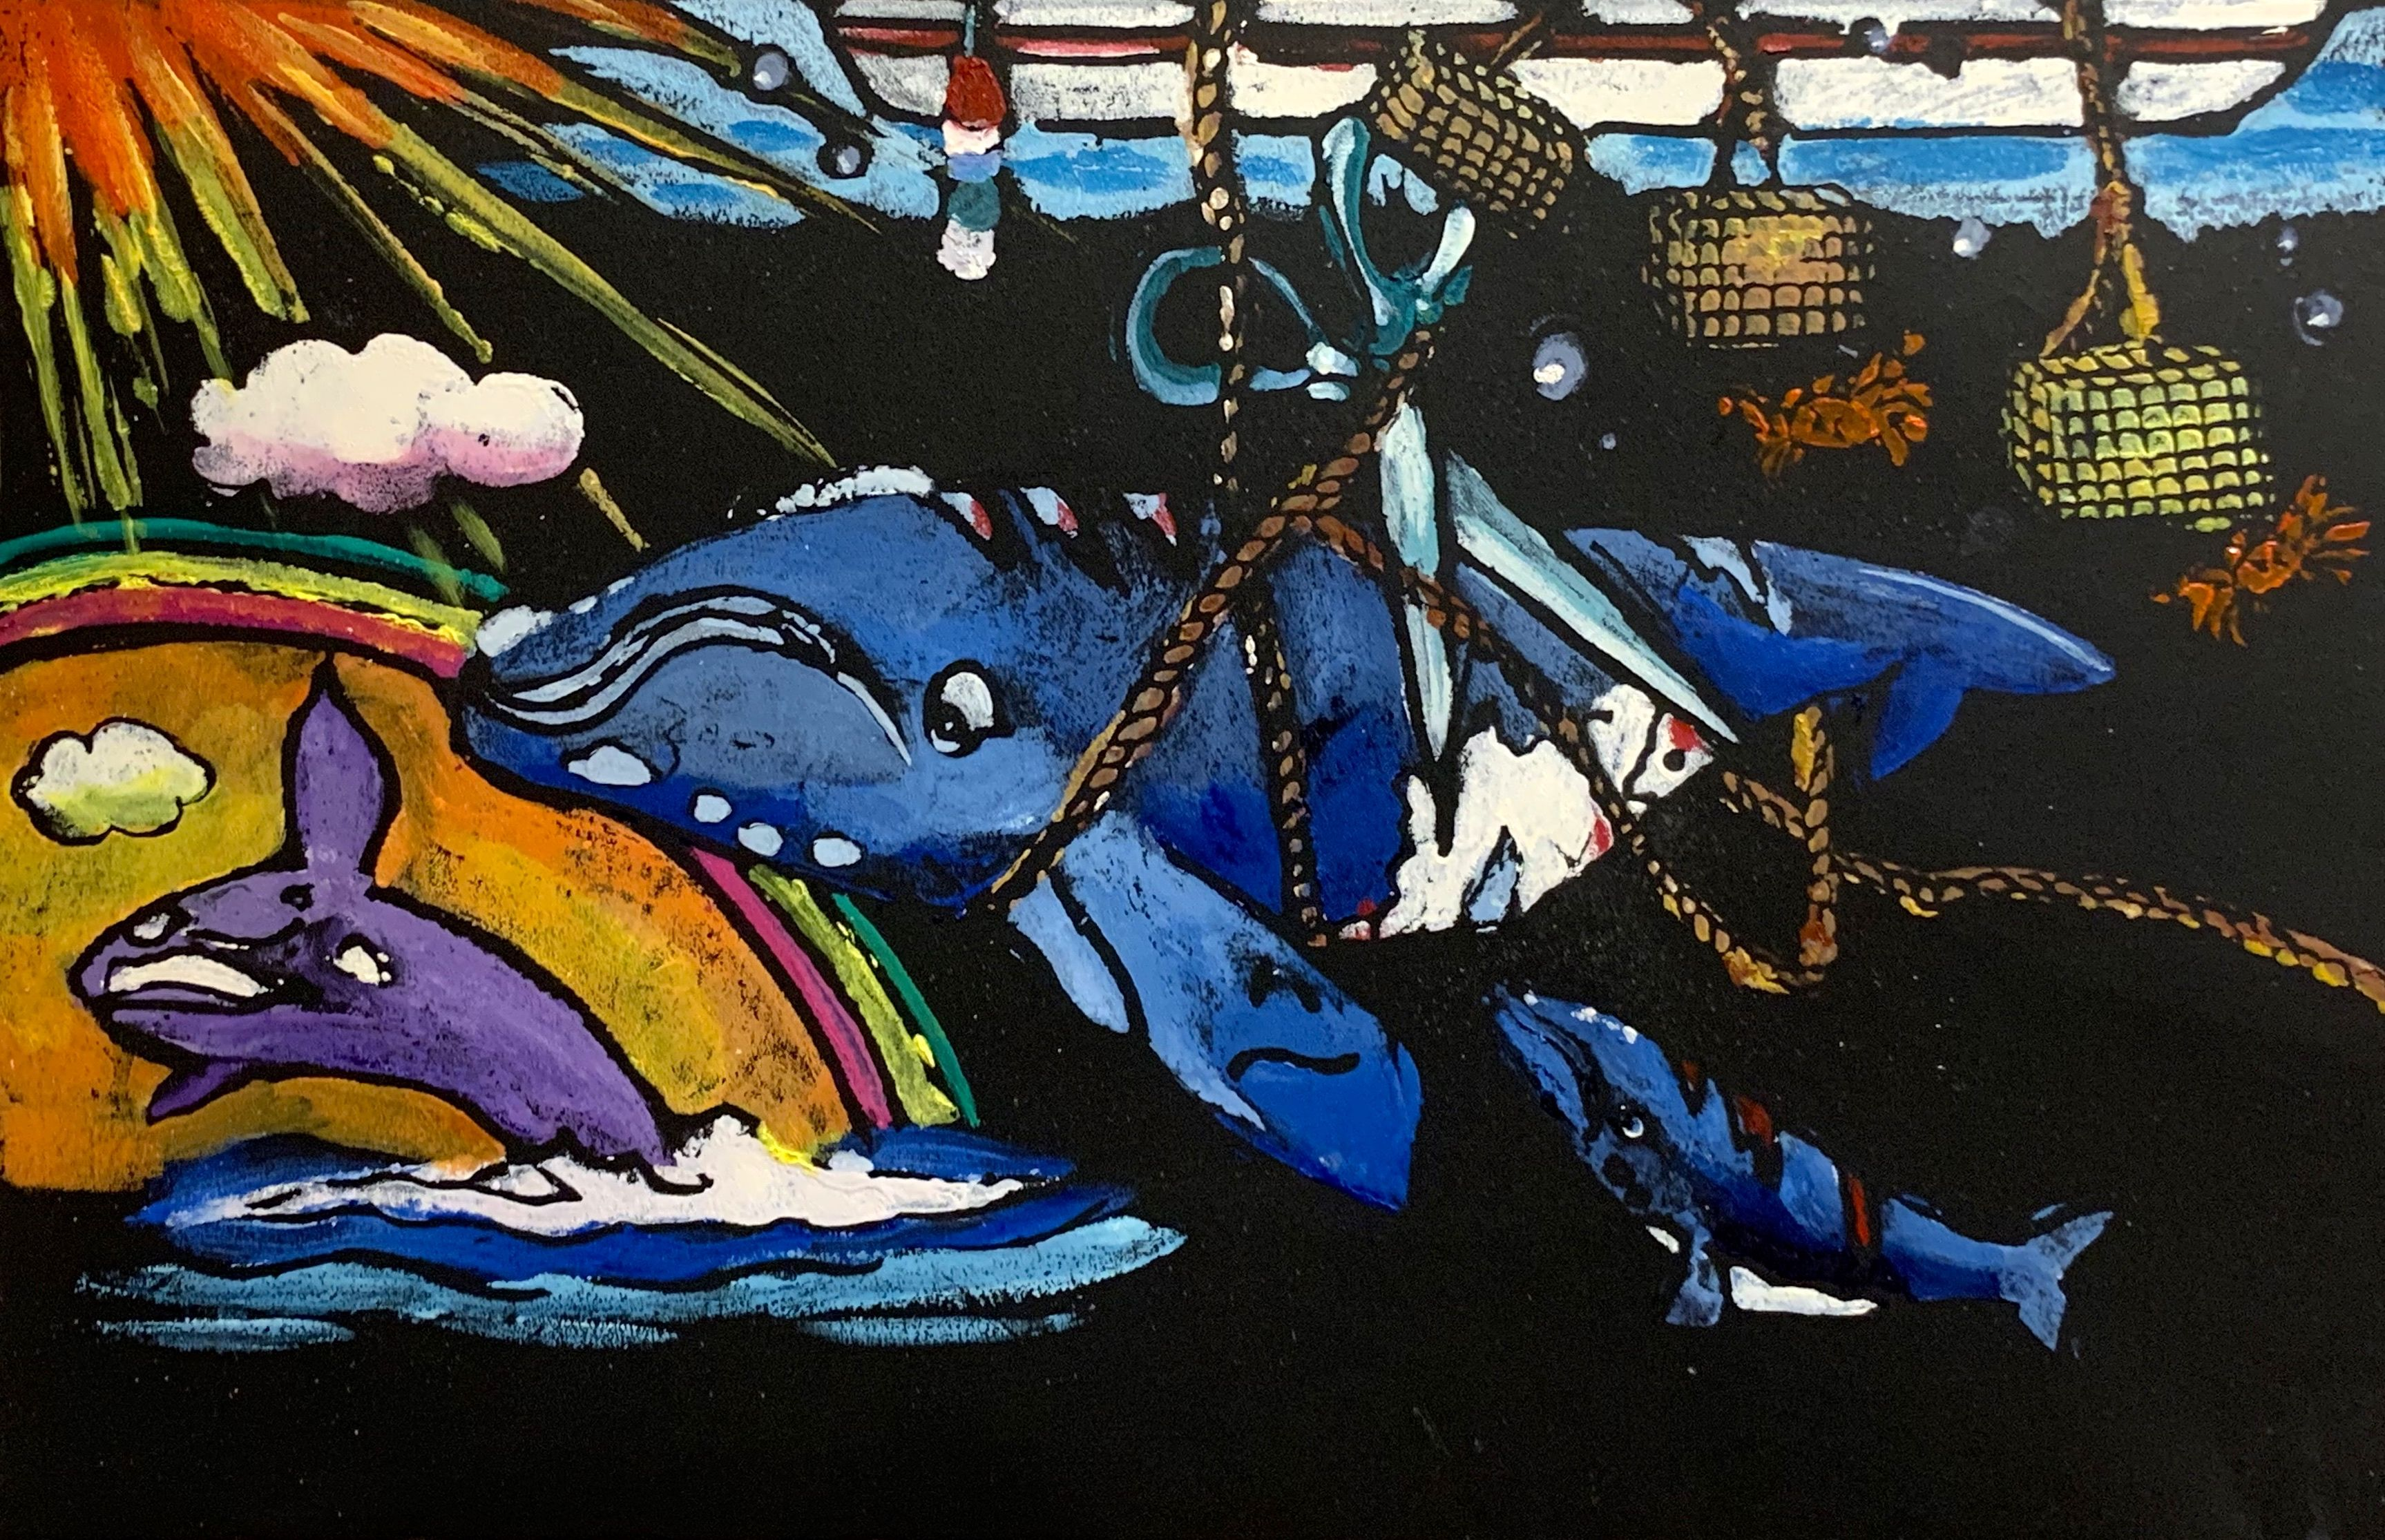 Bow Seat In Partnership With Conservation Law Foundation Launched The 2019 Healthy Whale Healthy Ocean Challenge To Engage Lo Whale Marine Ecosystem Artwork